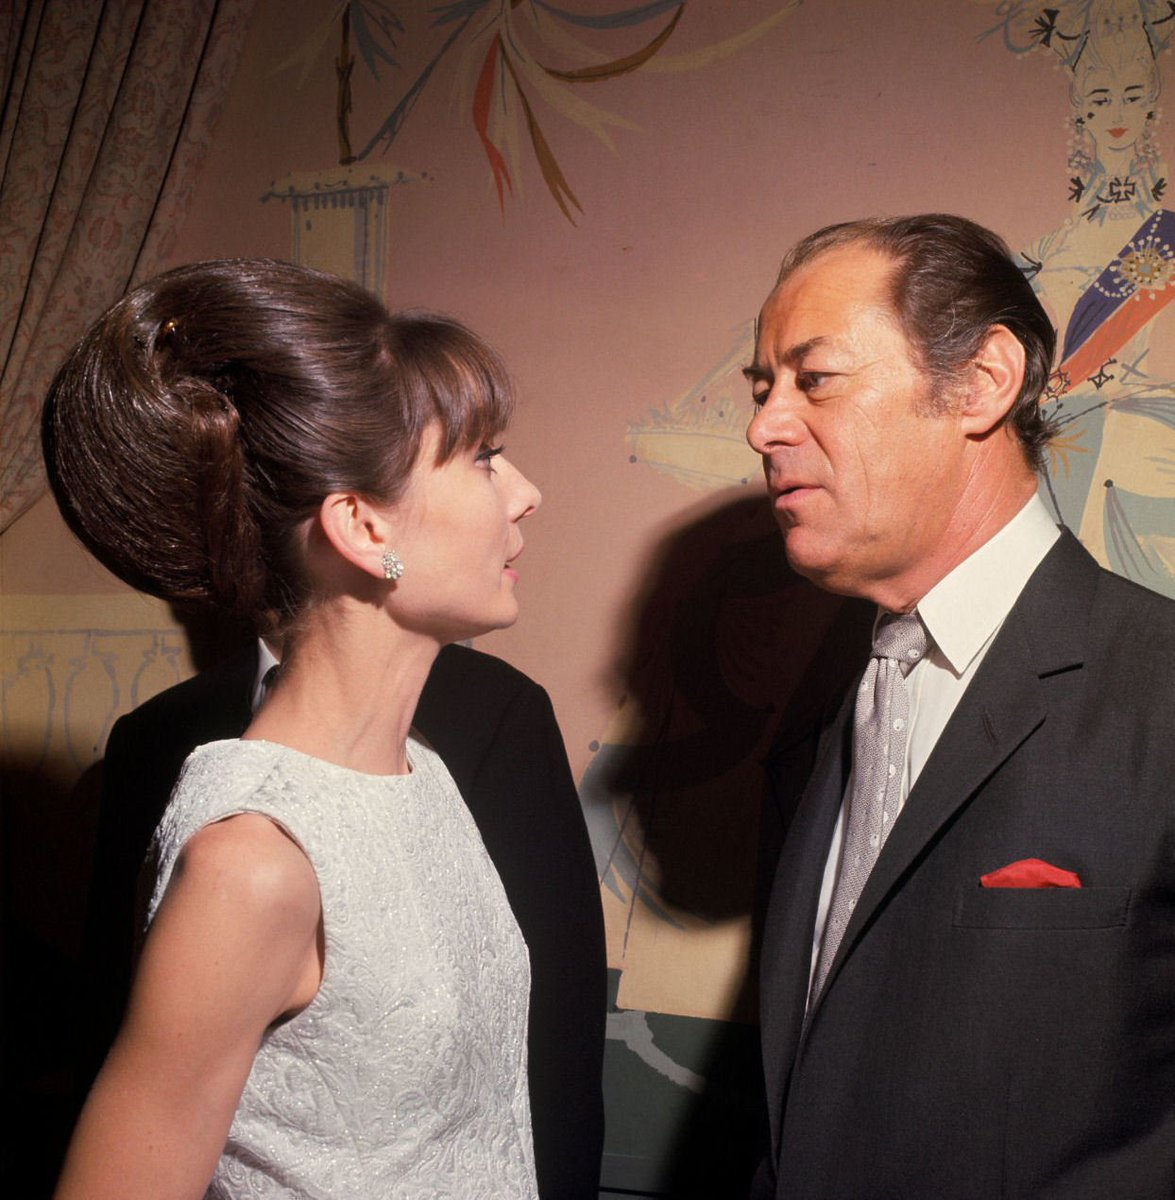 Audrey Hepburn On Twitter Happy Birthday Rex Harrison Audrey Hepburn Photographed With Rex Harrison At The Sherry Netherland Hotel During A Press Reception For My Fair Lady 1964 Https T Co G7nxrjoysx